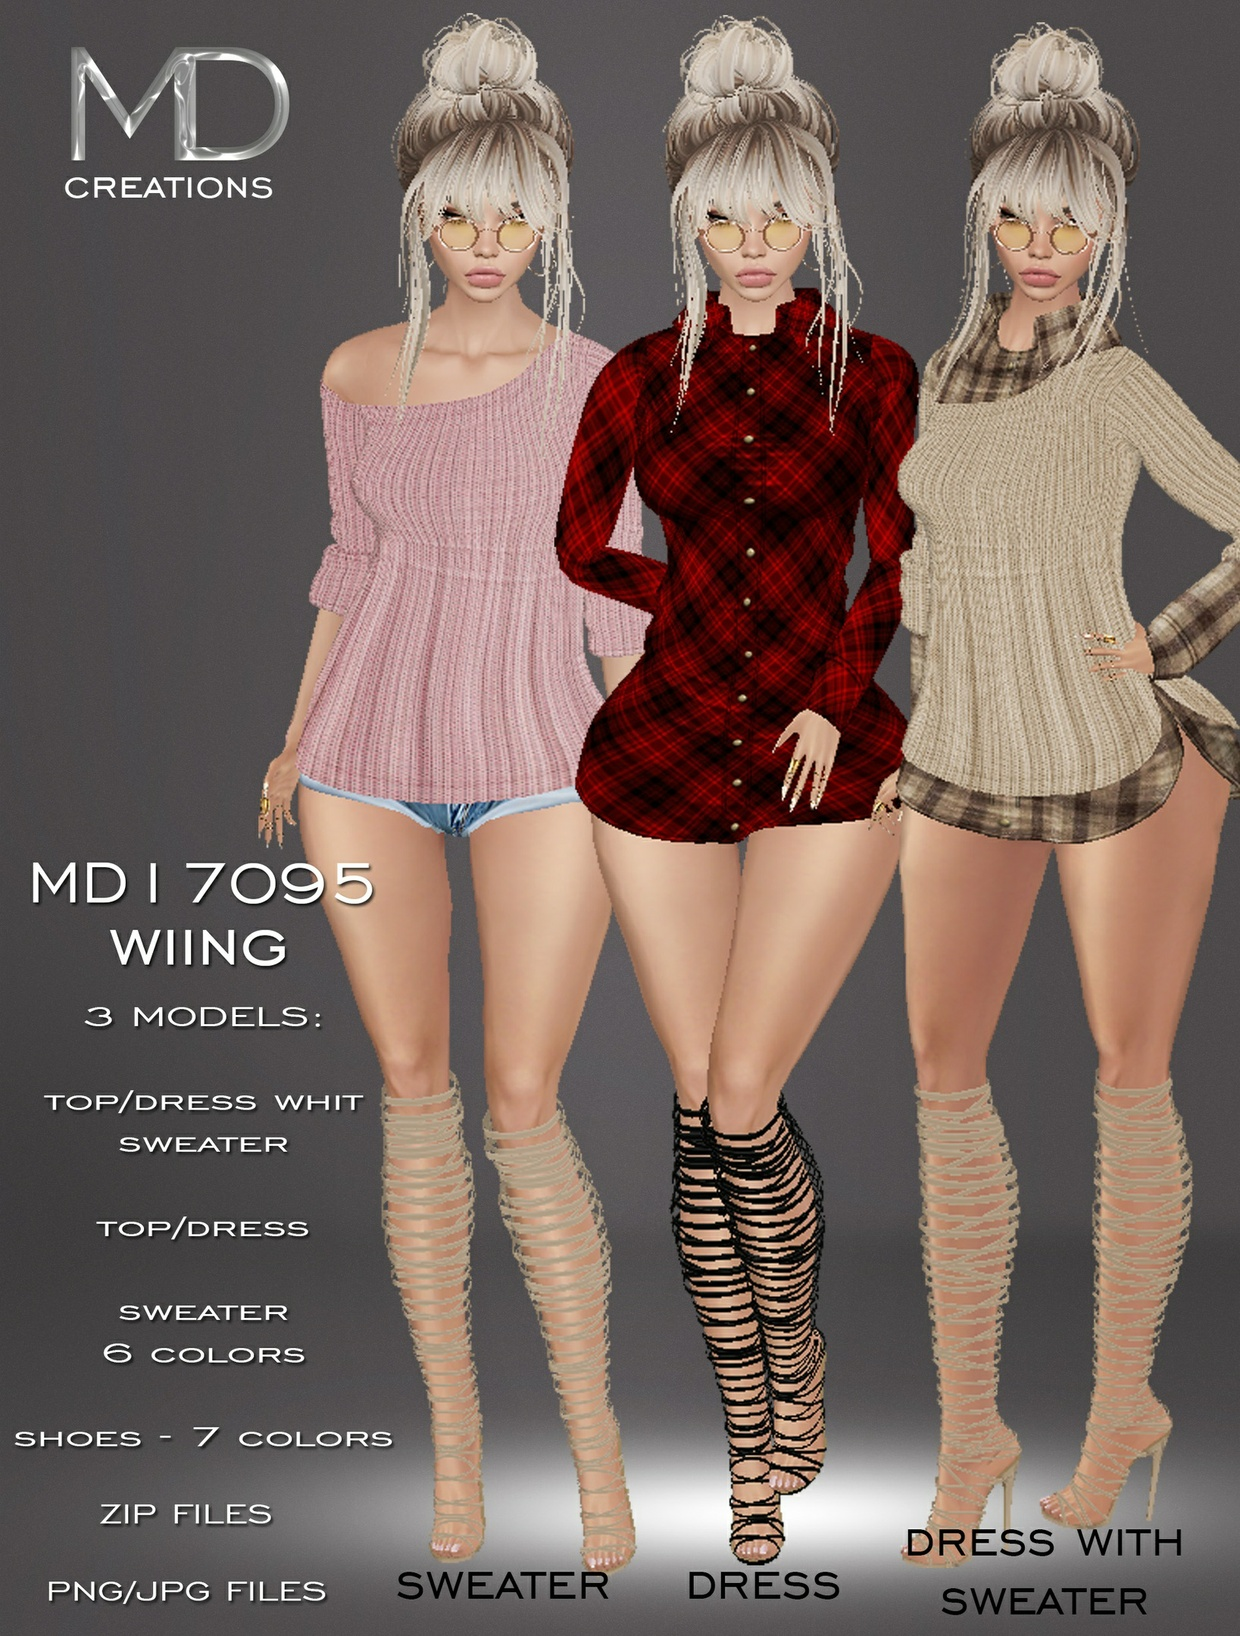 MD17095 - Wiing